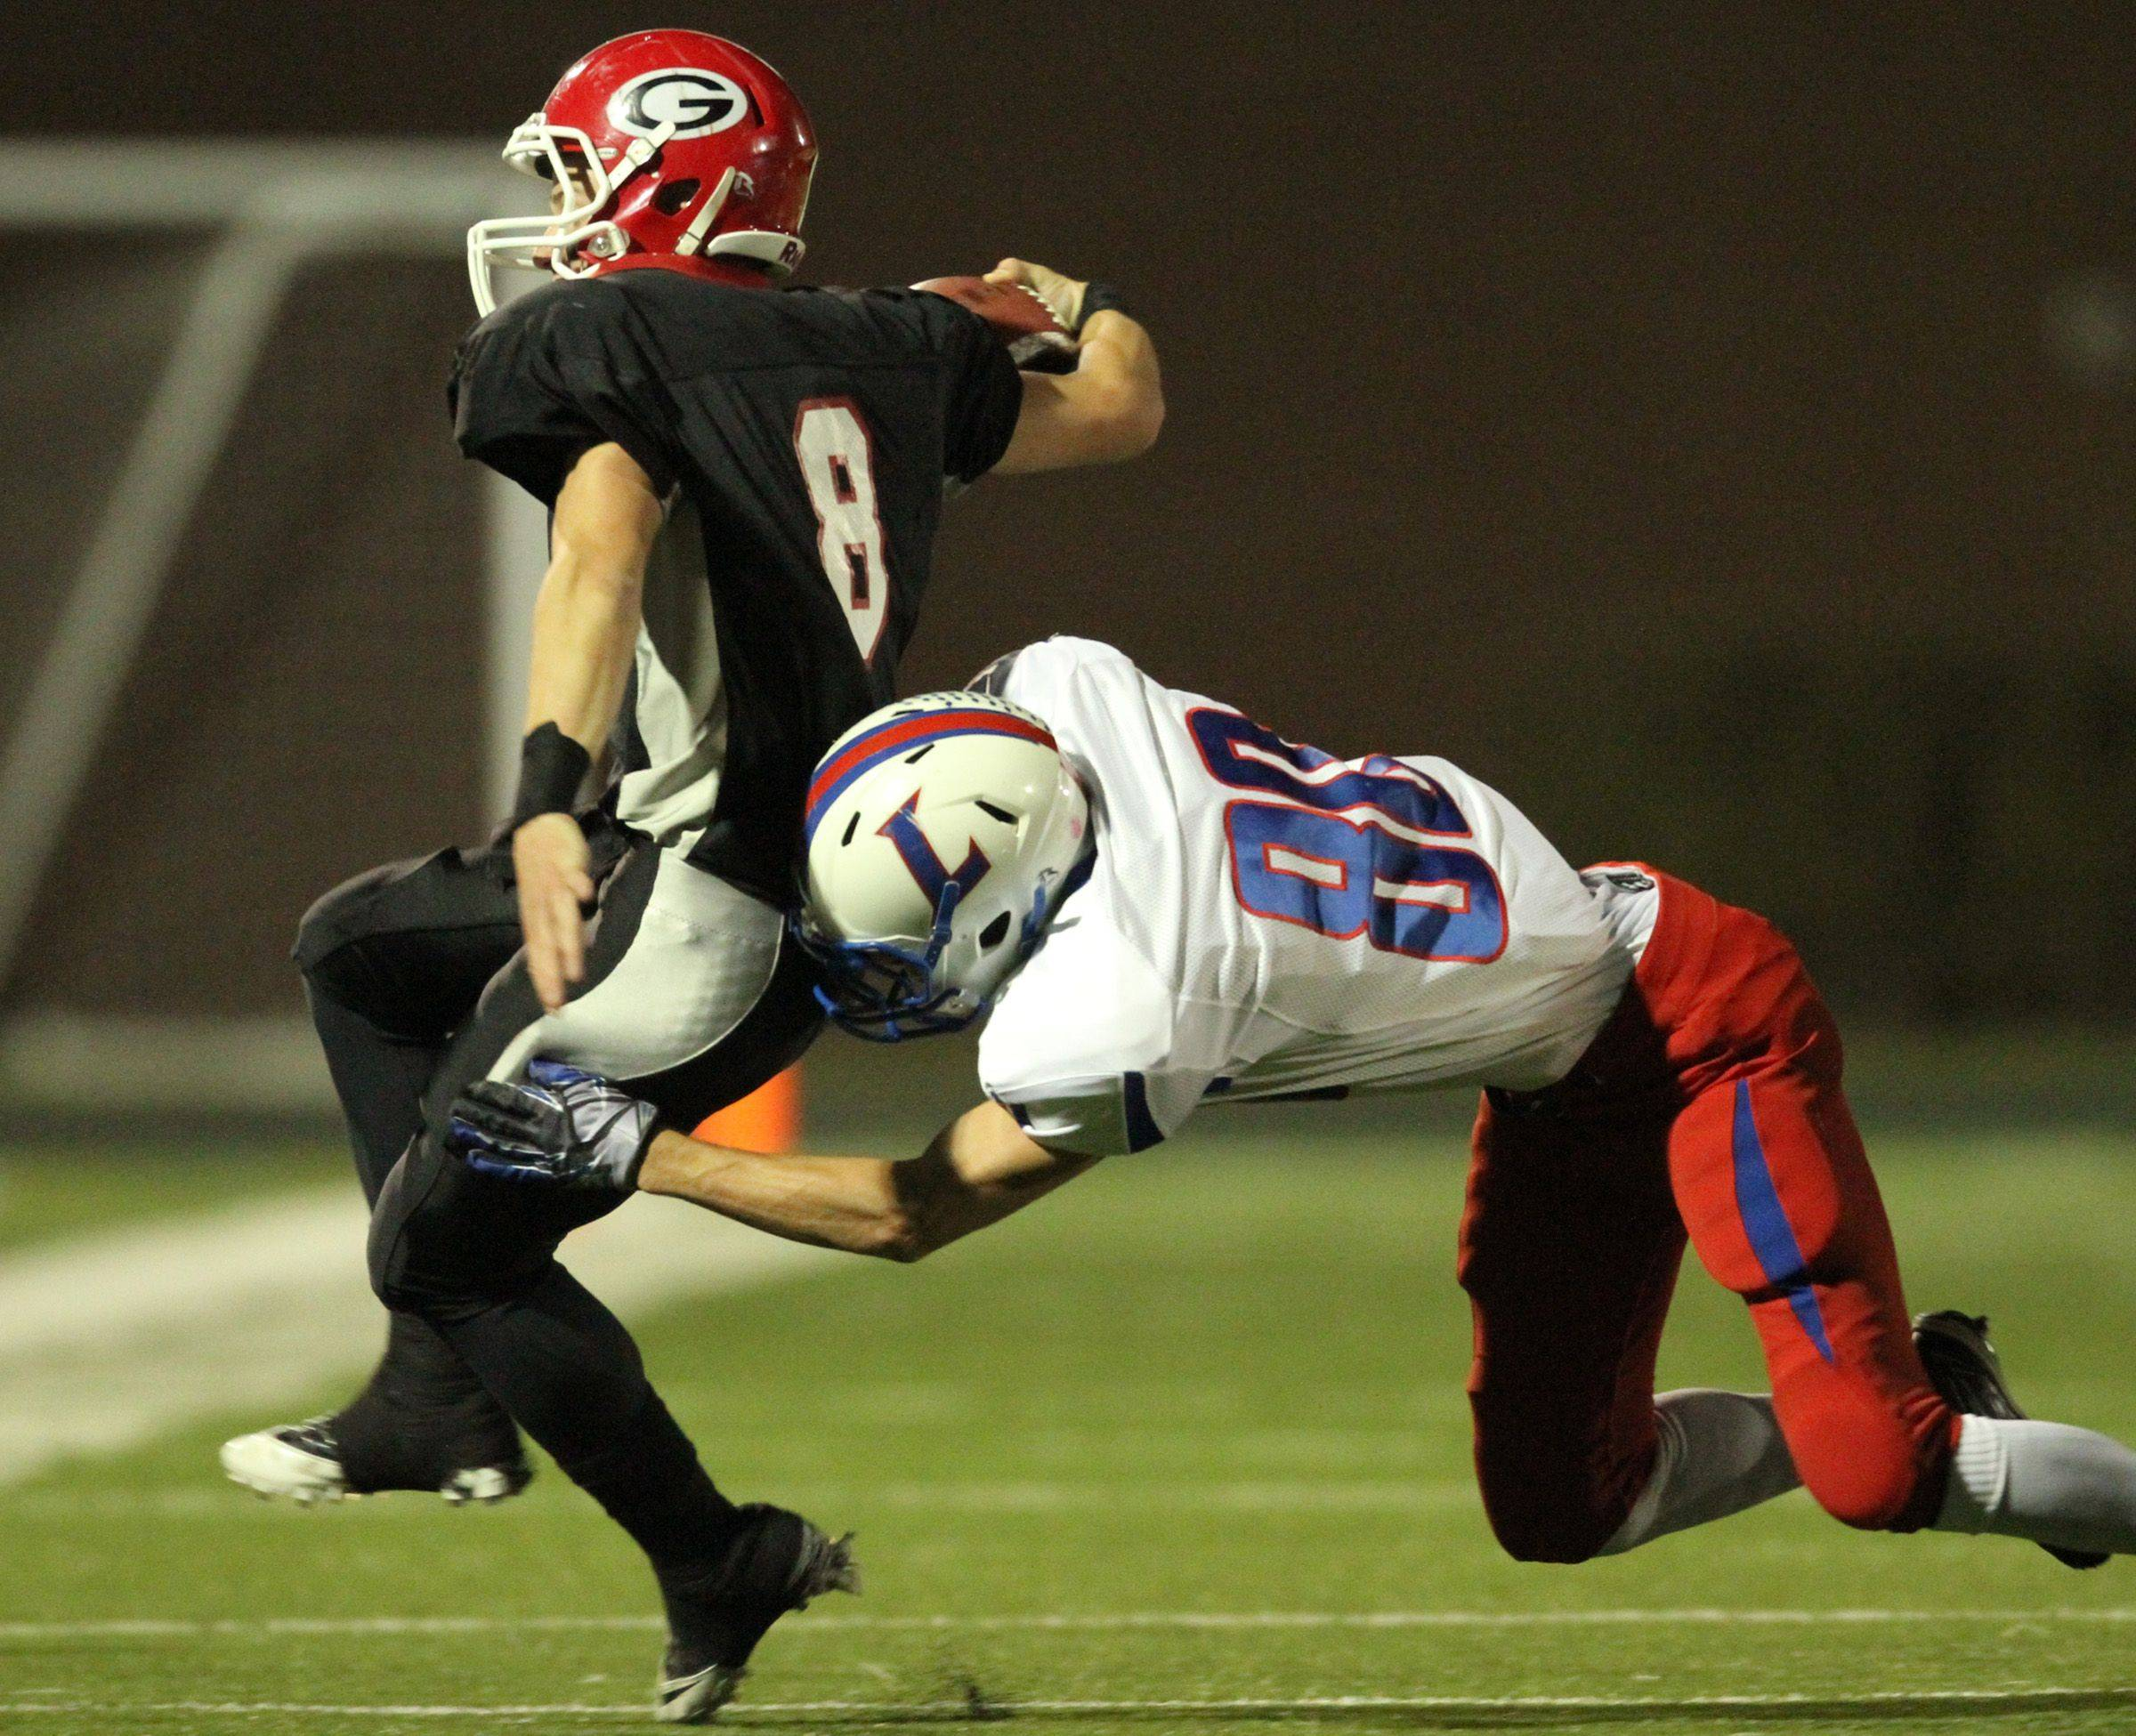 WEEK 9- Lakes defender Josh Pohlman knocks Grant's Leo Minne out of play .